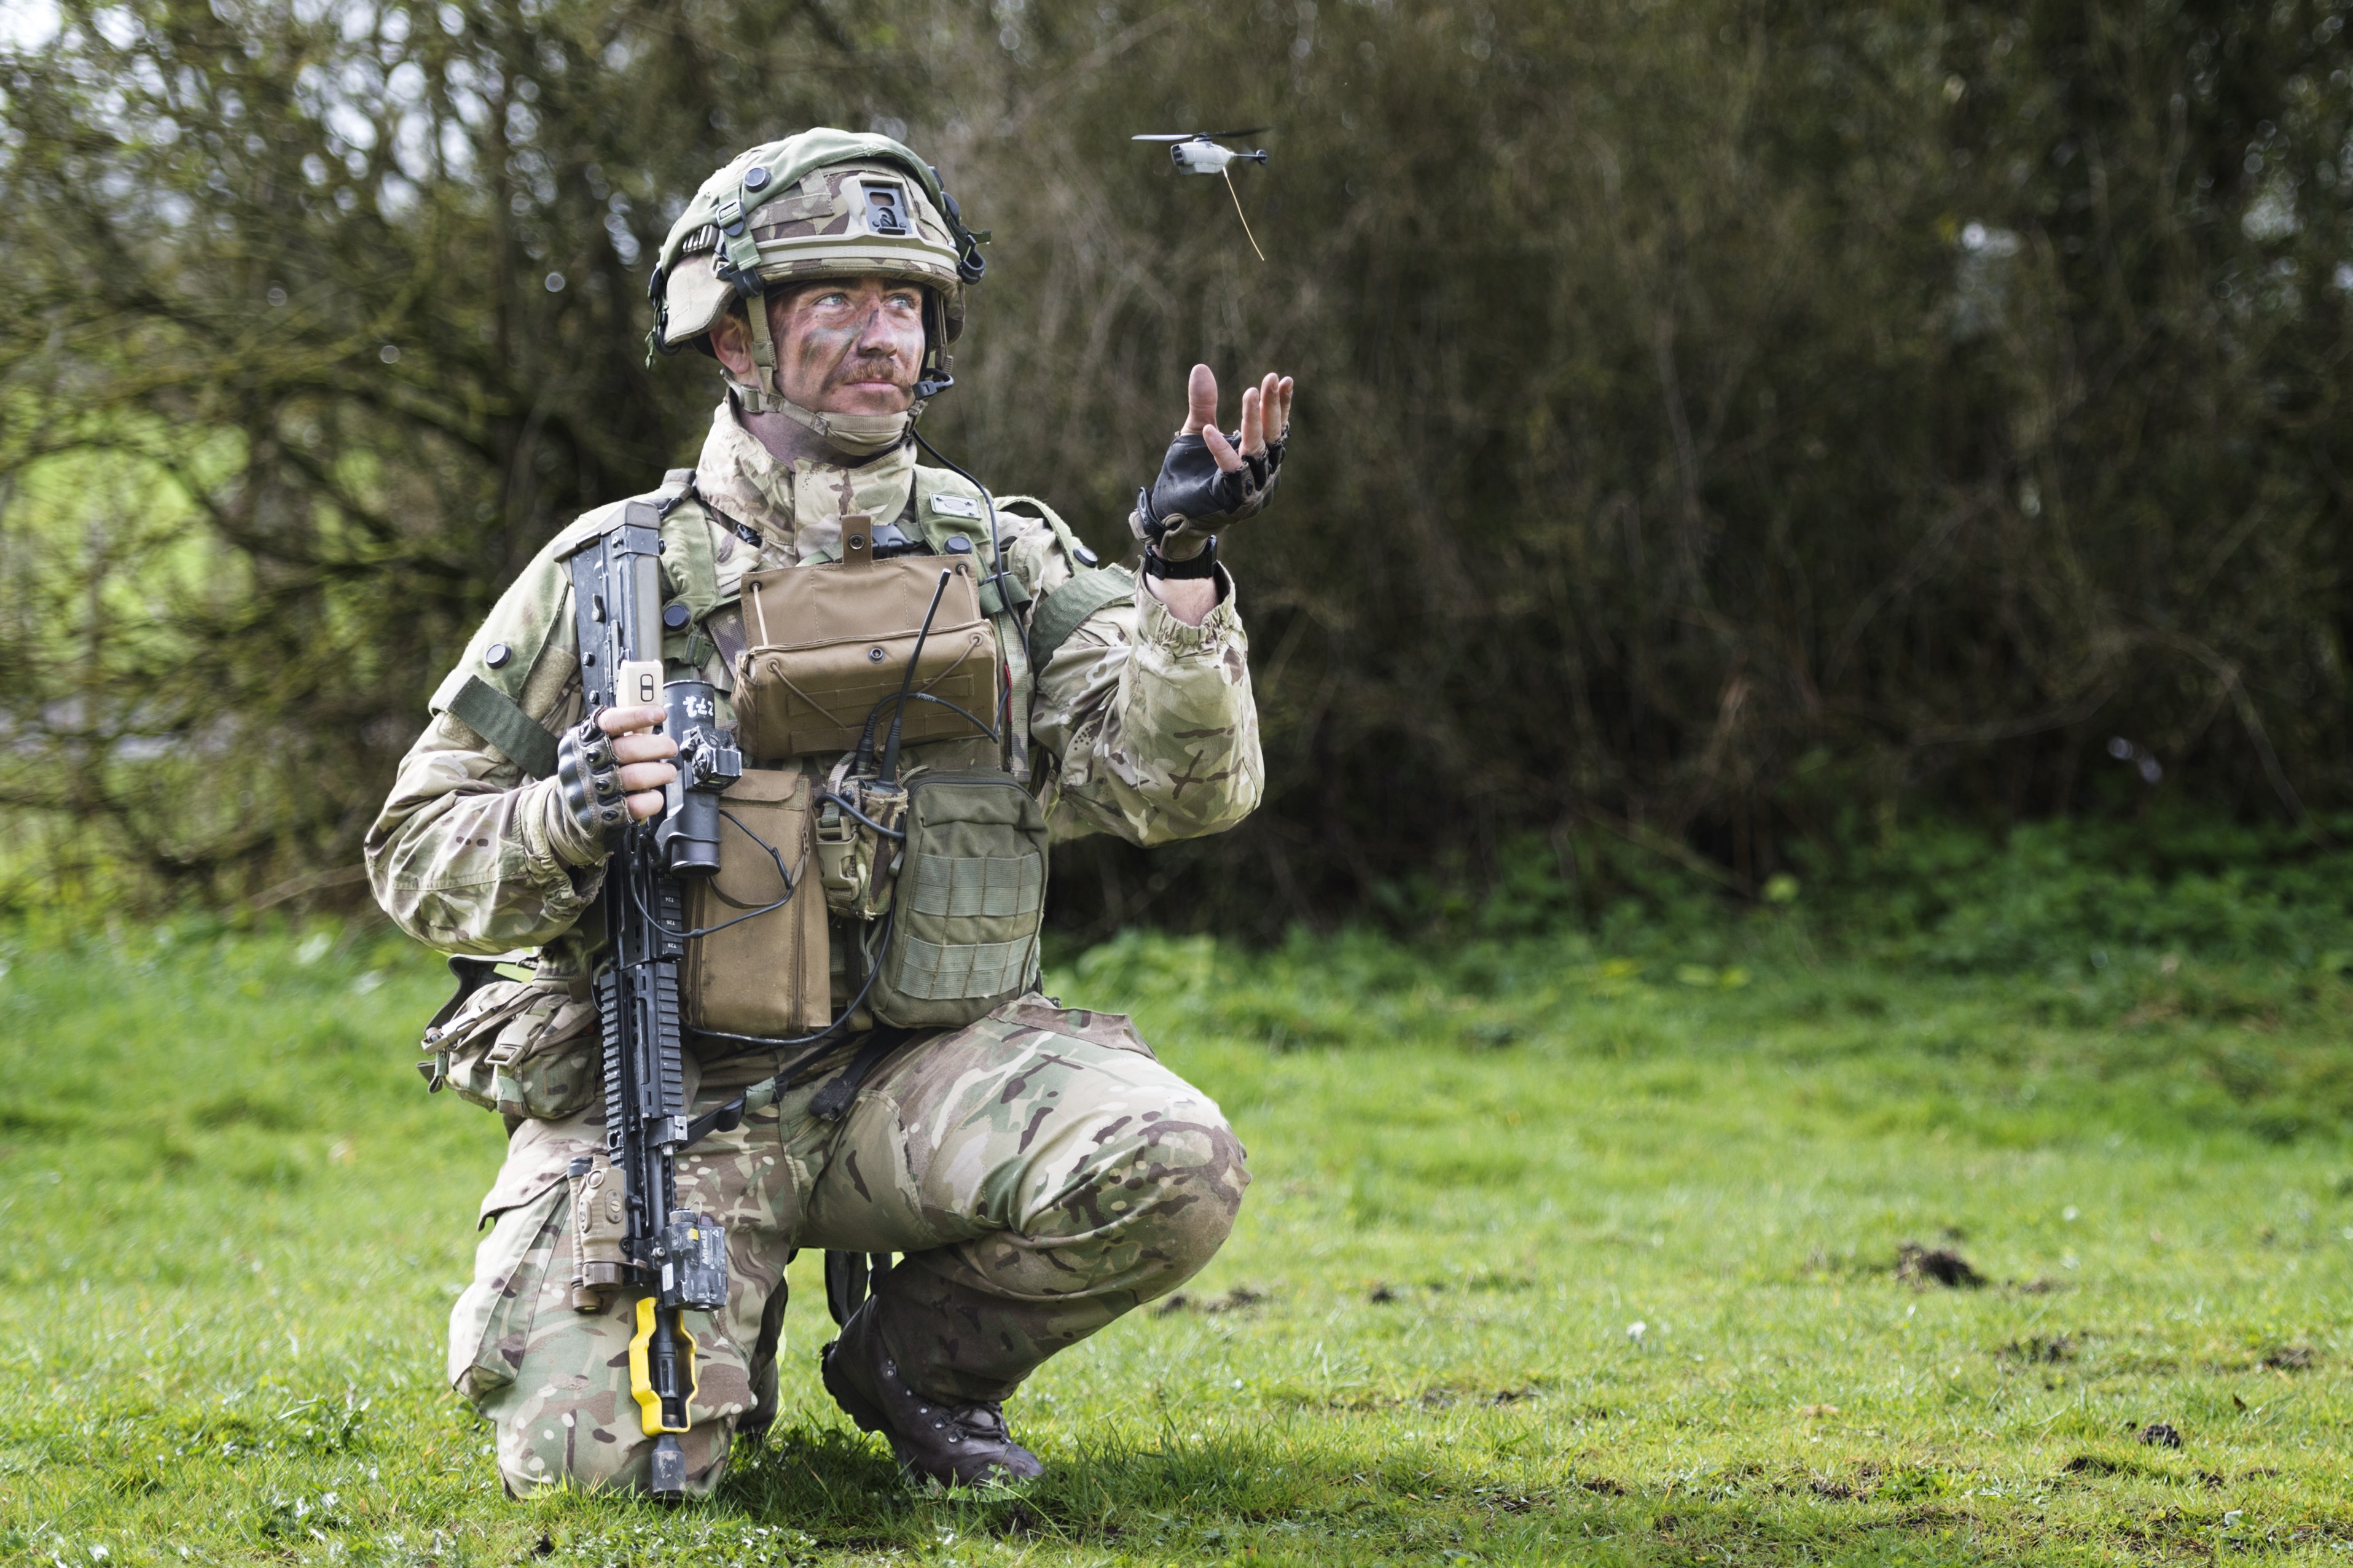 Soldier handling a small remote piloted piece of technology